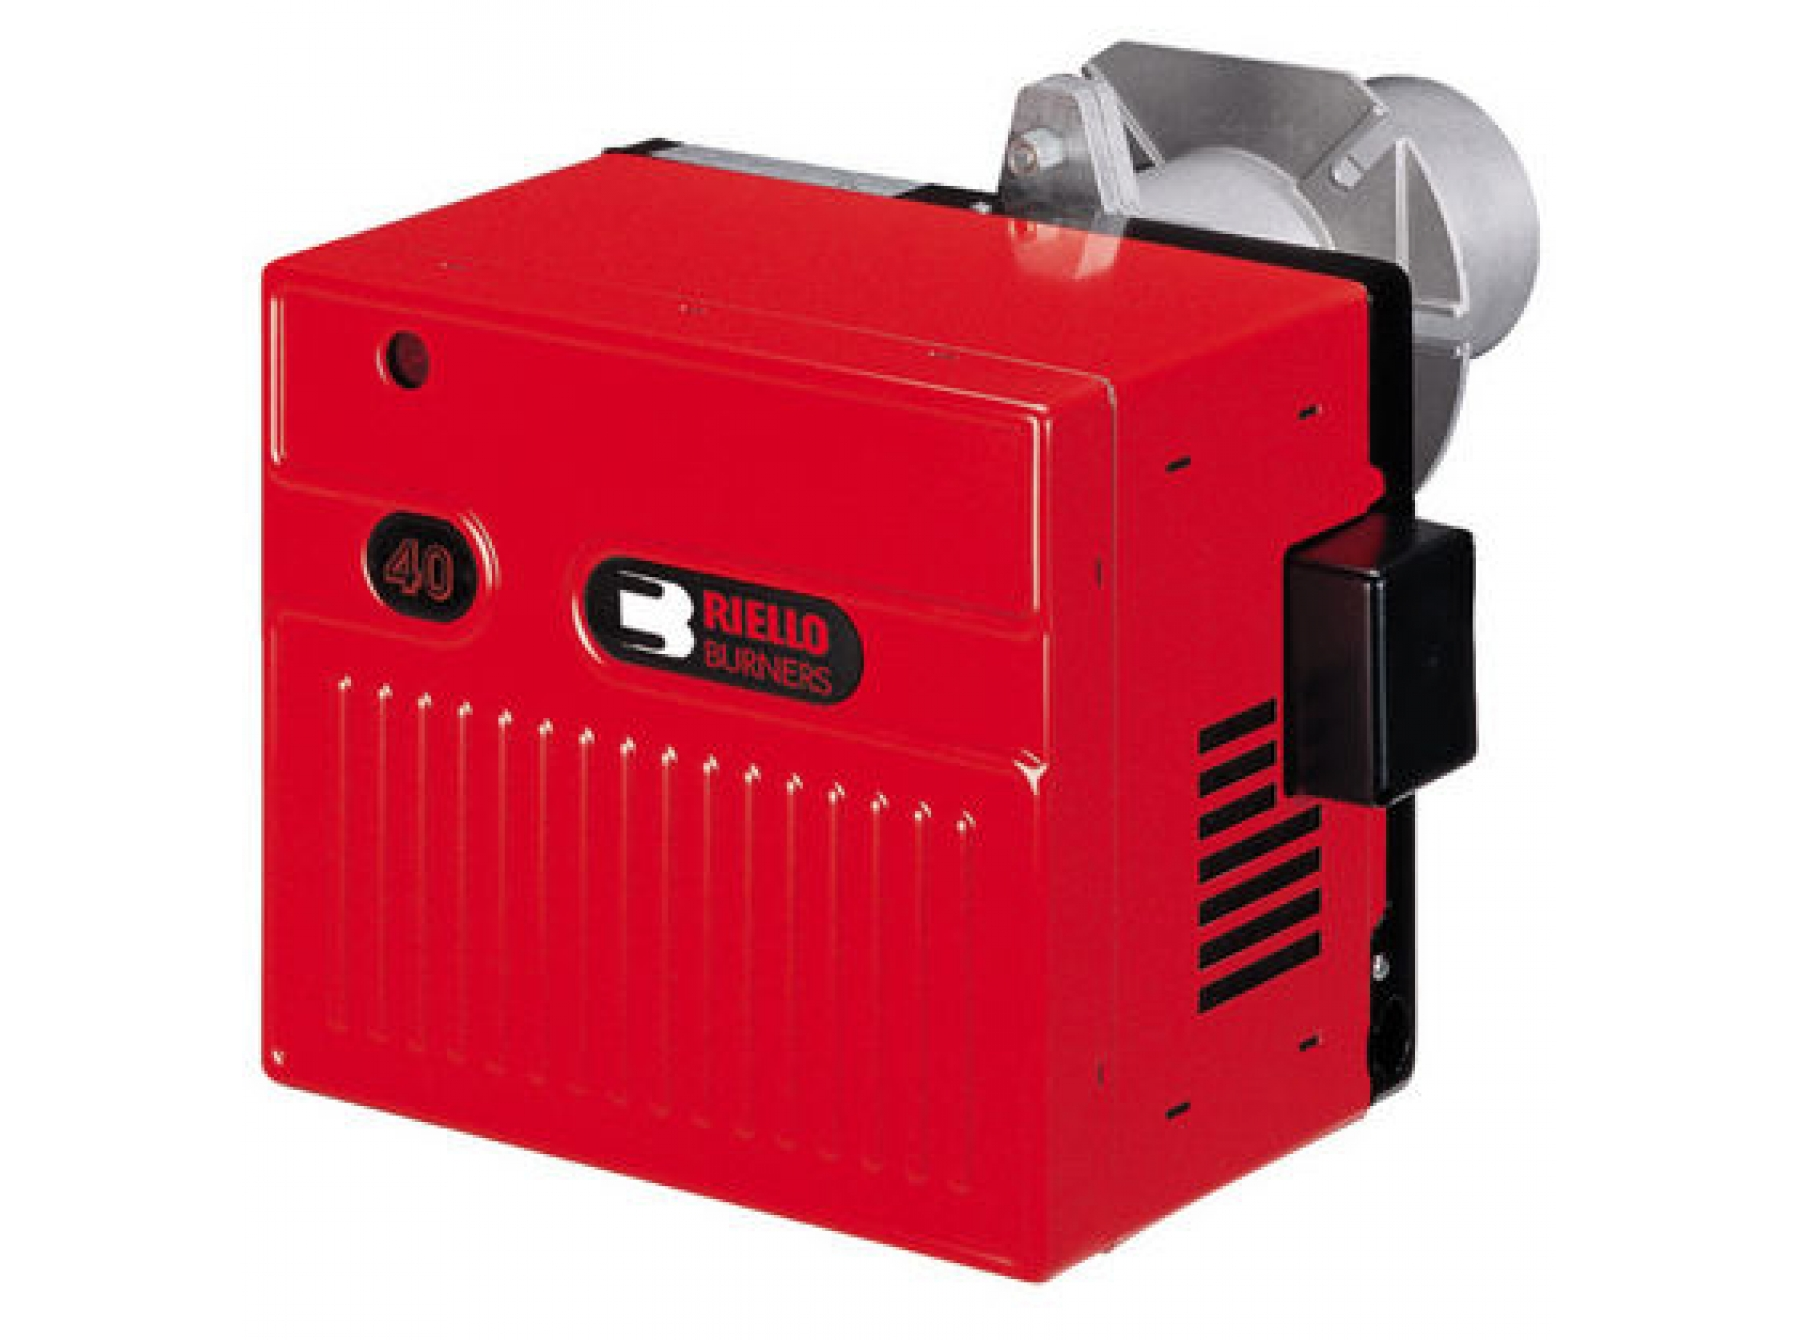 Riello G120-G400 - Available in Canada - Ward Heating.